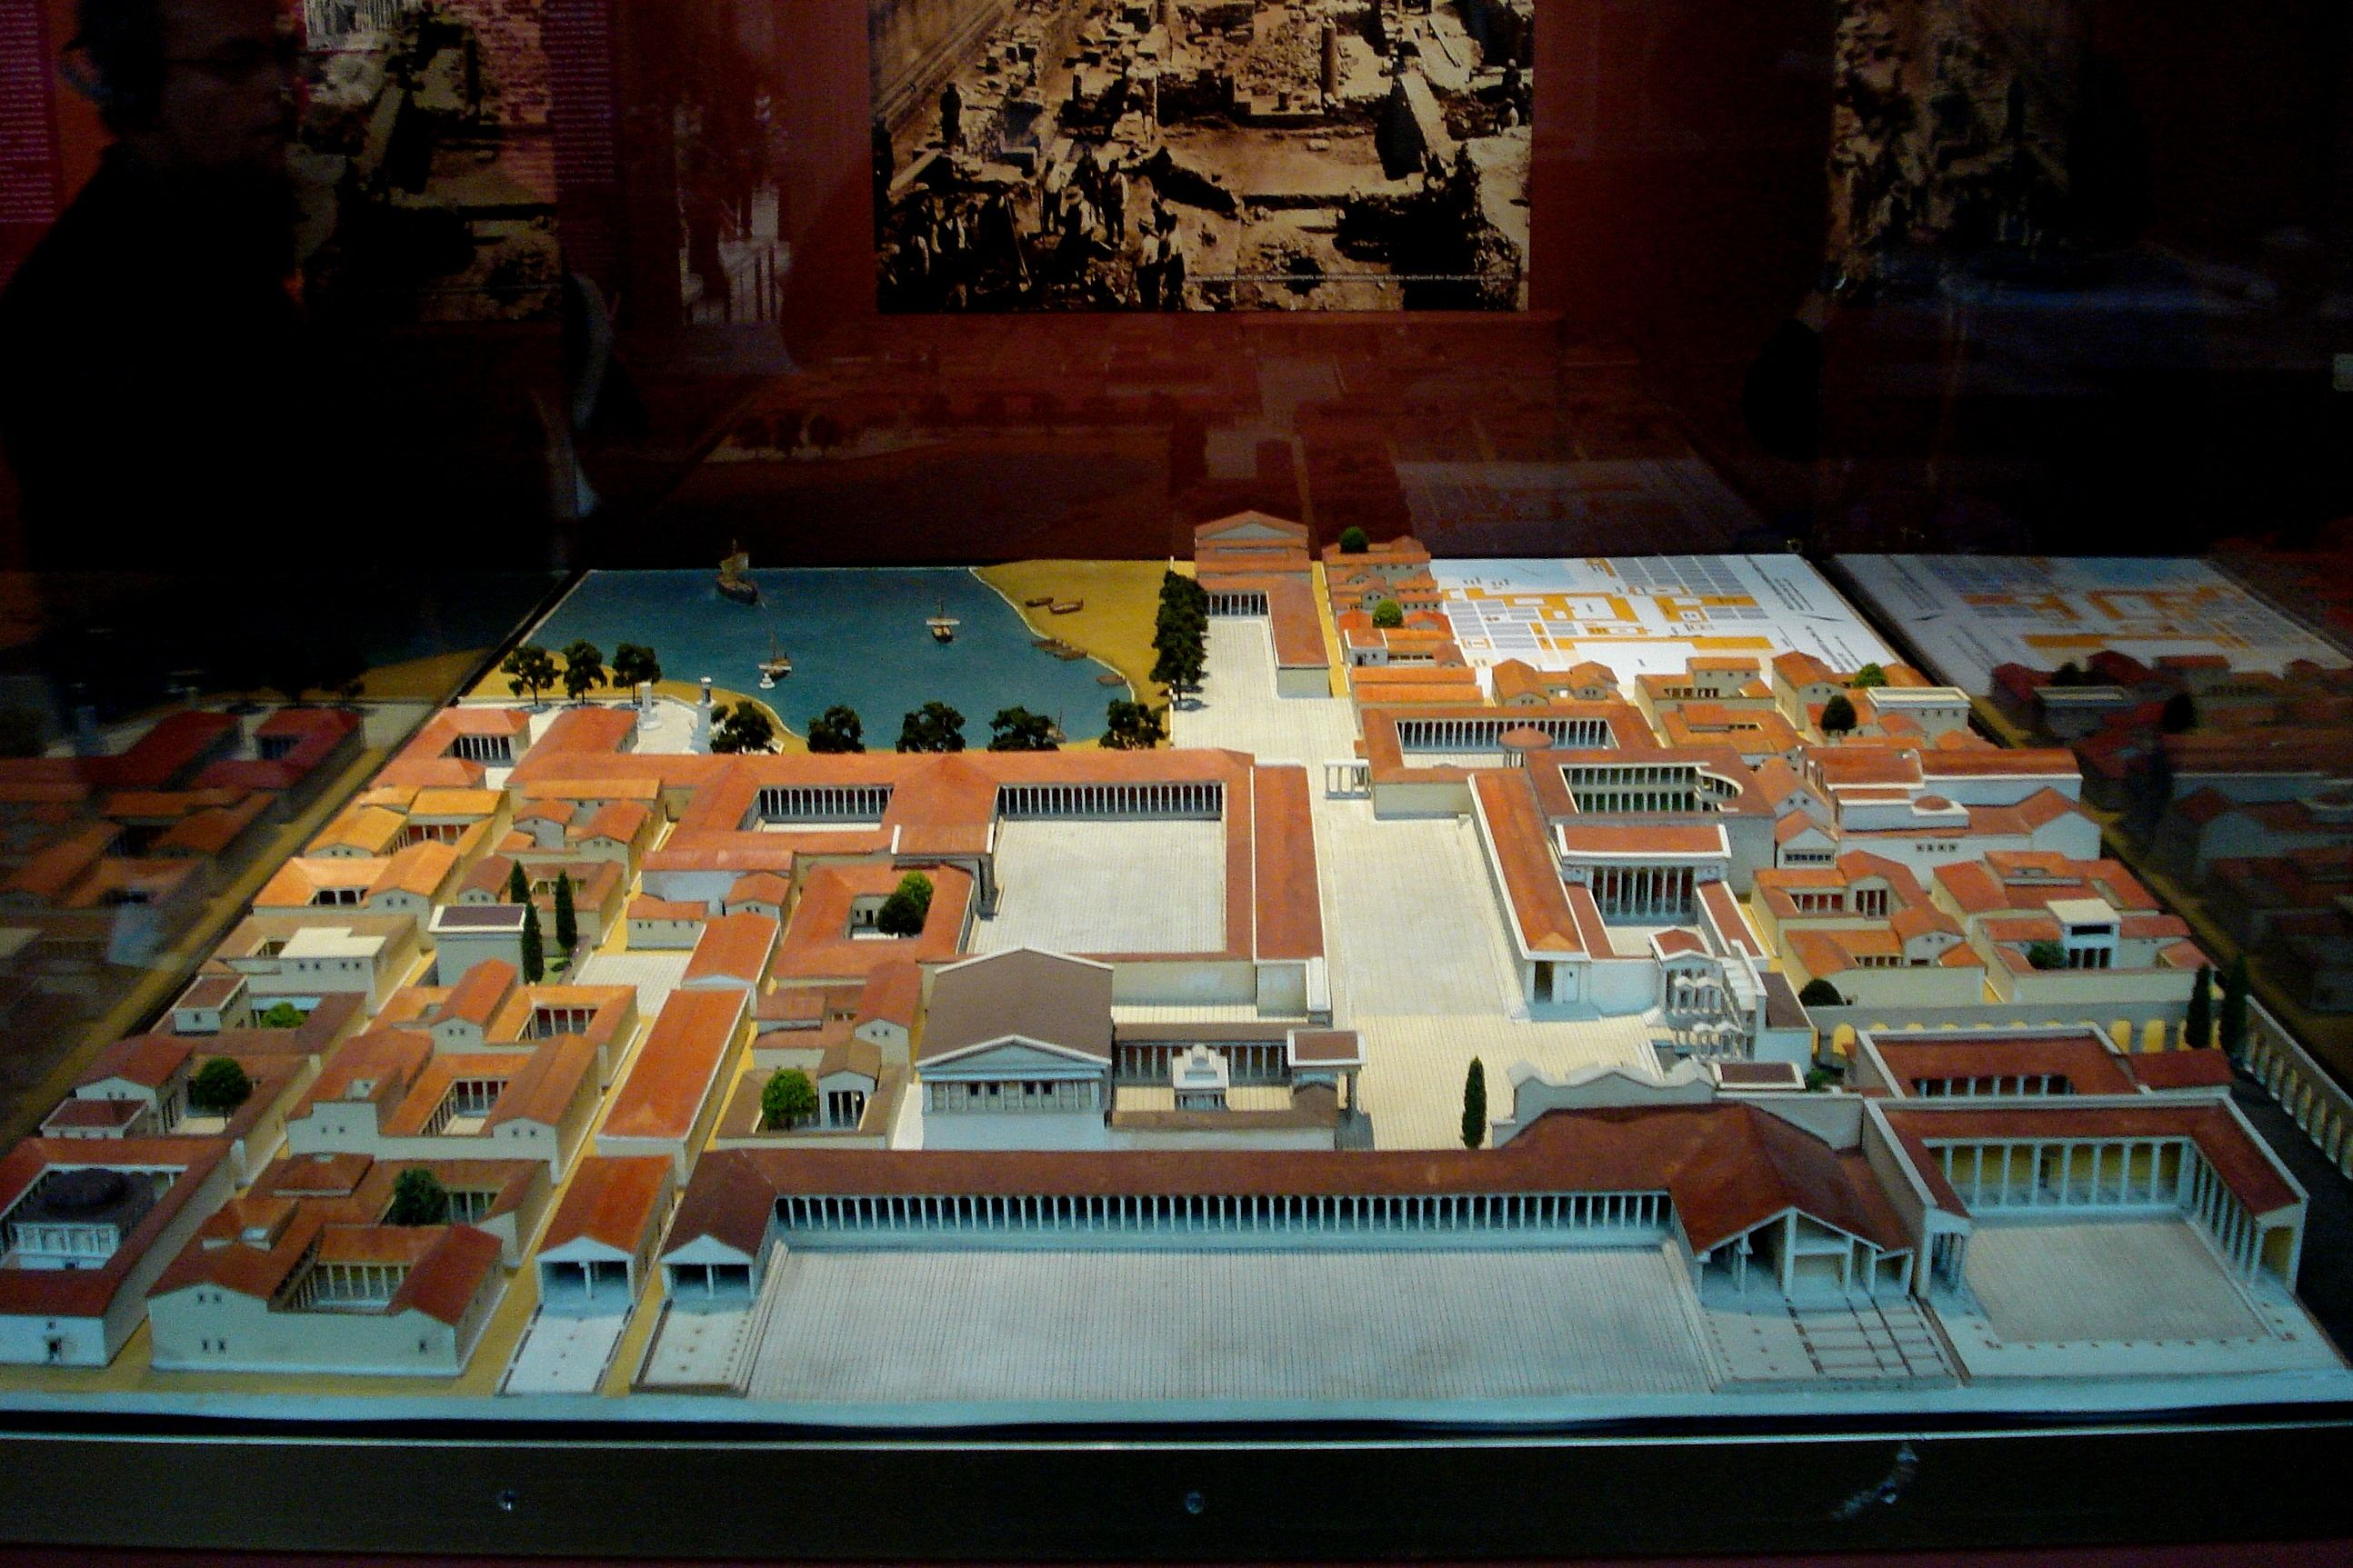 Urban Planning Miletus Reconstructed Model Of Agora Pergamonmuseum In Berlin It Is A Fine Example Of The Grid City Pla Ancient Greece Berlin Urban Planning